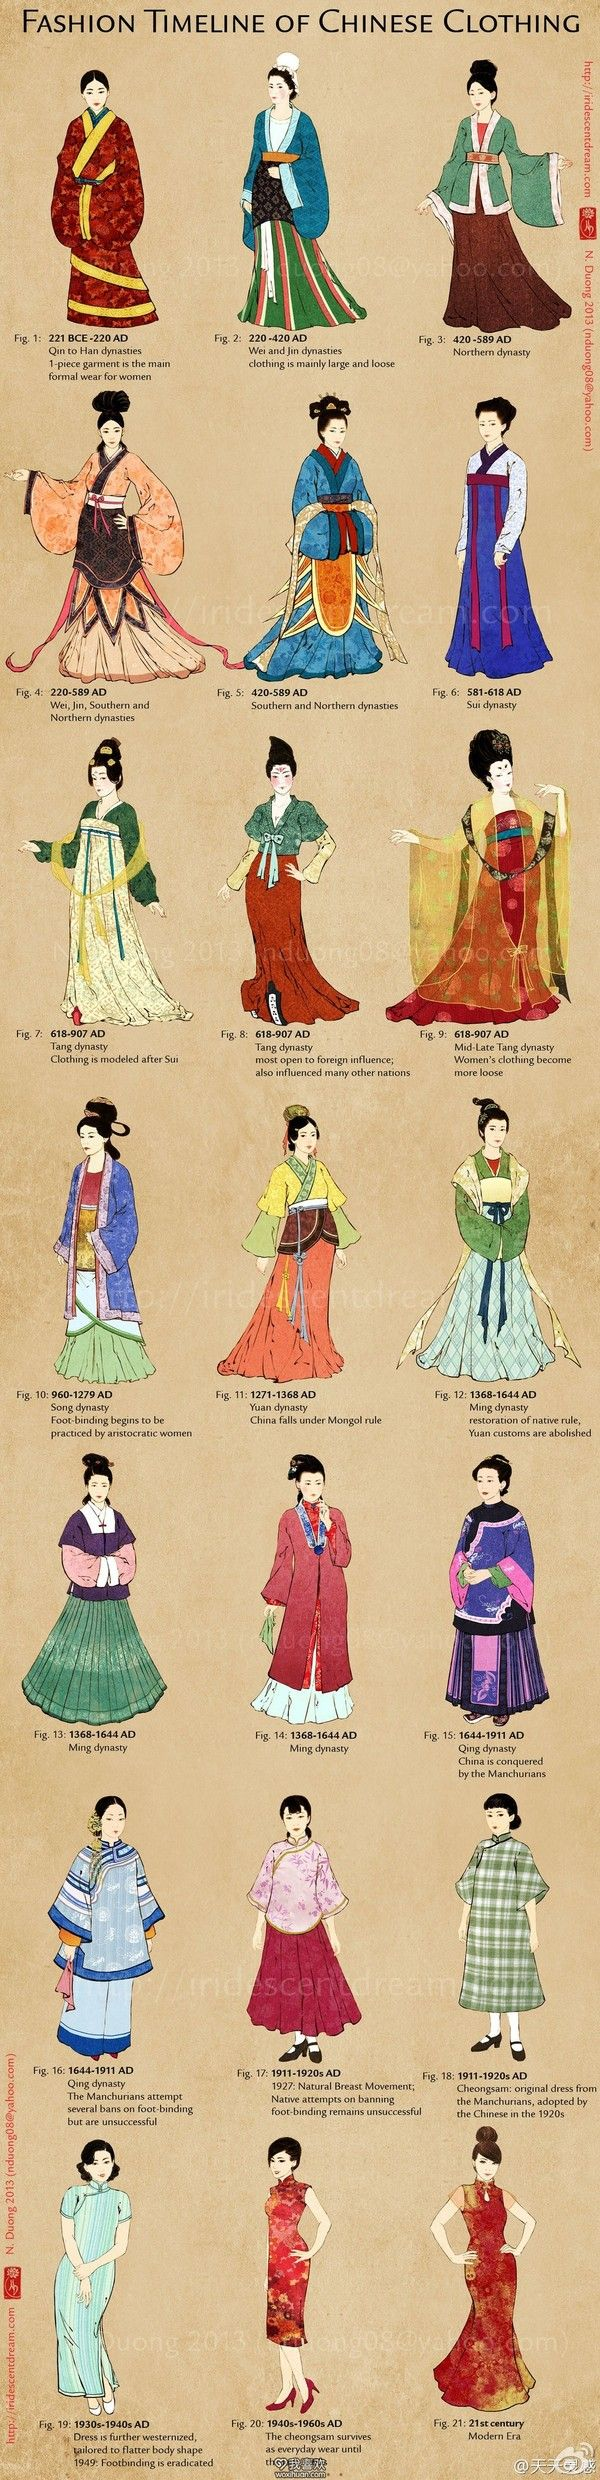 """The evolution of clothing in China"" from Han Chinese clothing to fashion has cheongsam"